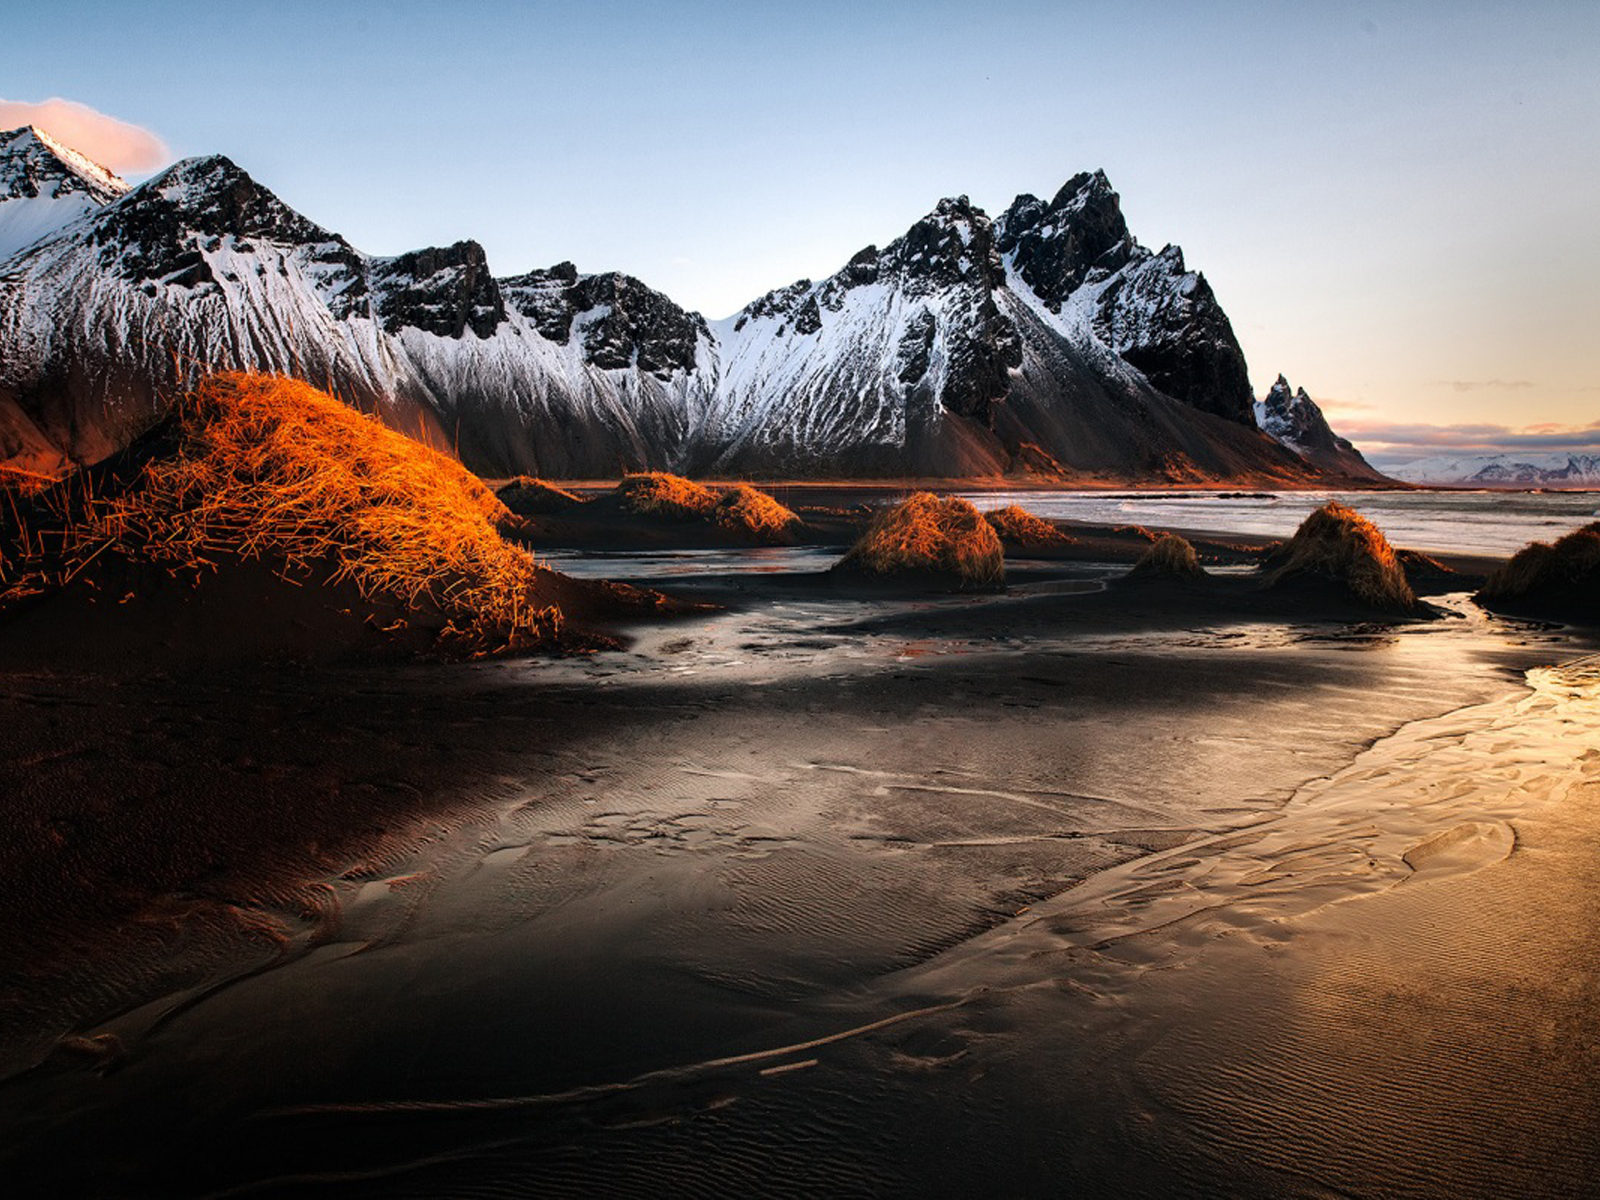 Snow Wallpaper Iphone 5 Vestrahorn Iceland Winter Sunrise Landscape Sea Coast